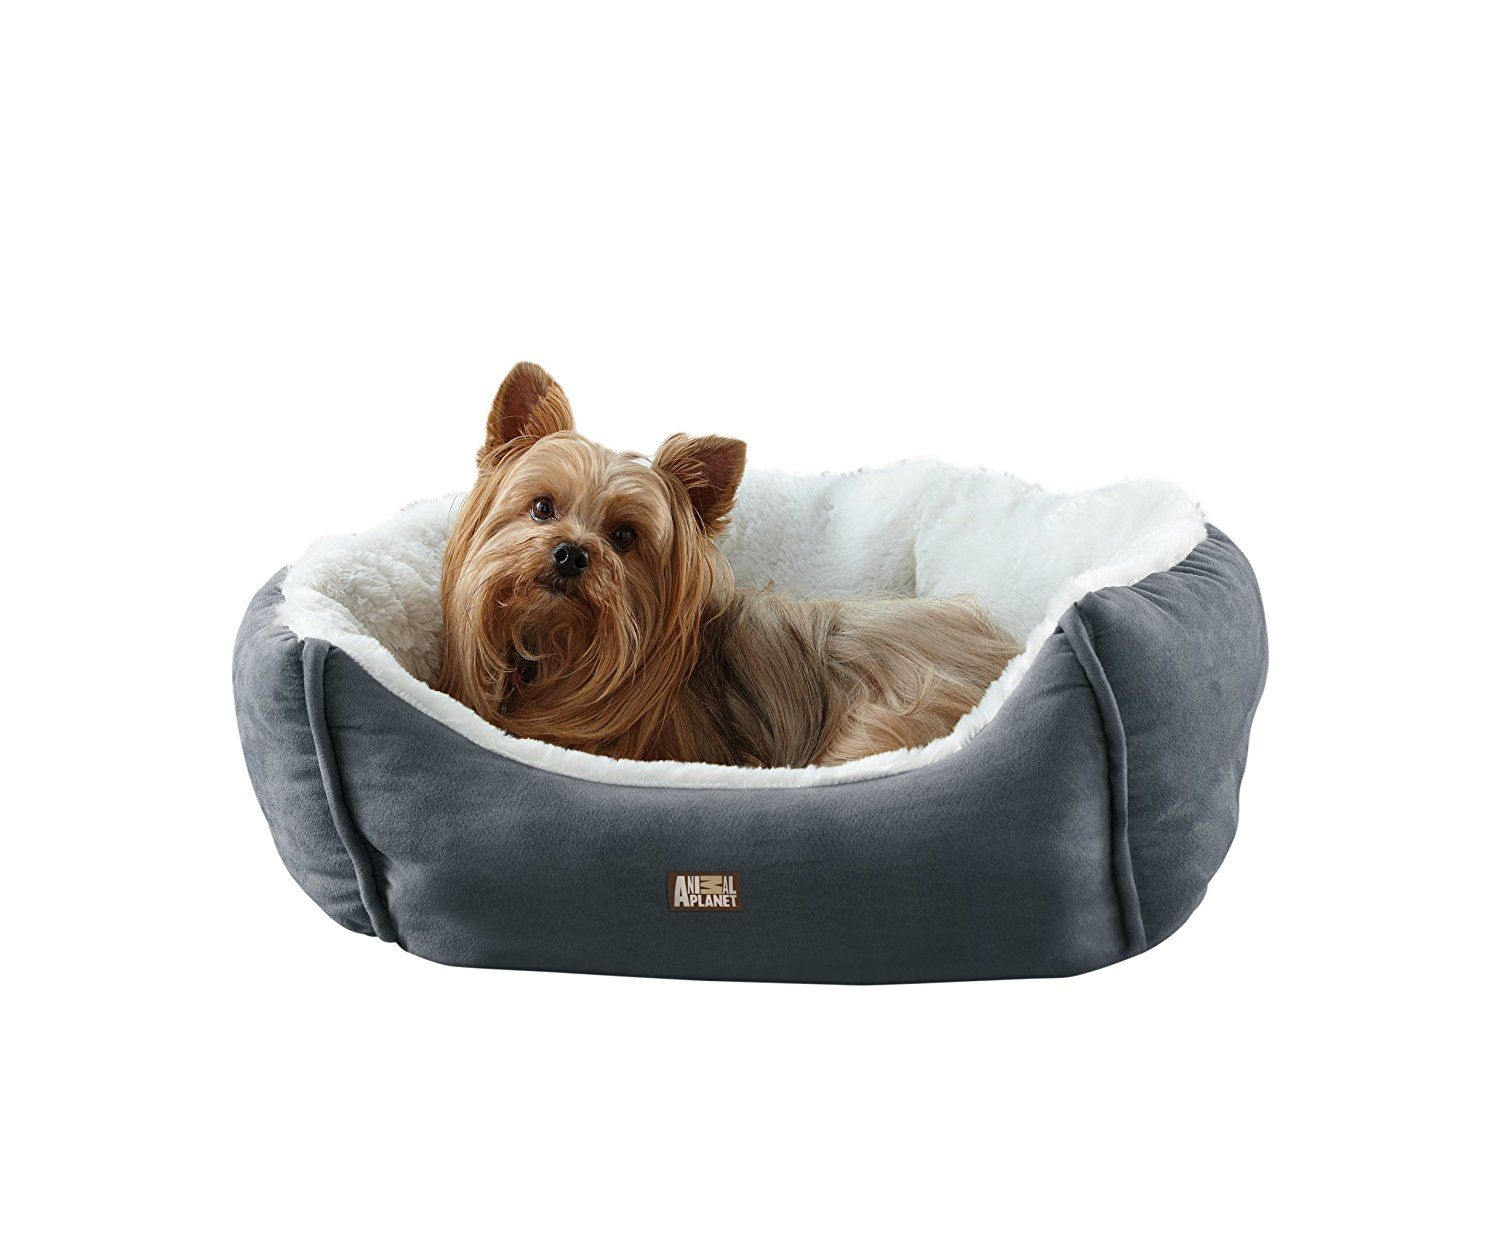 Animal Planet Micro Suede Pet Bed Blue Read More Reviews Of The Product By Visiting The Link On The Image This Is An A Animal Planet Dog Pet Beds Pet Bed